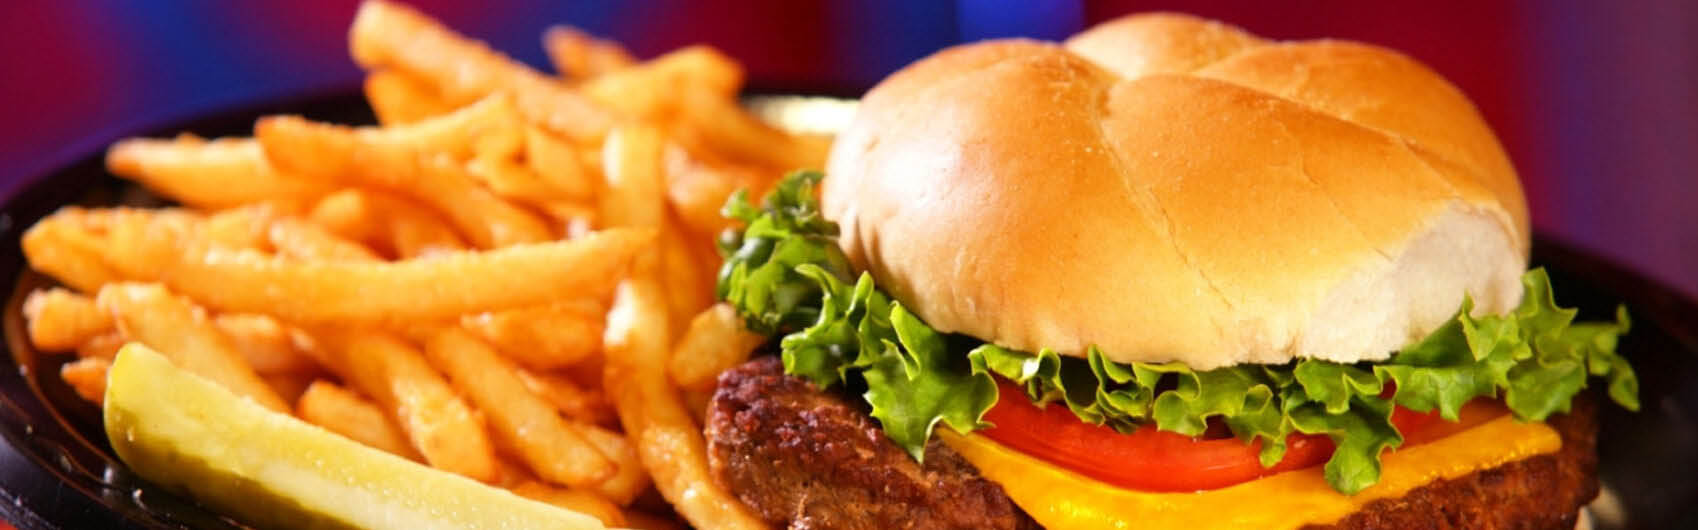 rochester burger coupons fries all american coupon LDR char pit restaurant